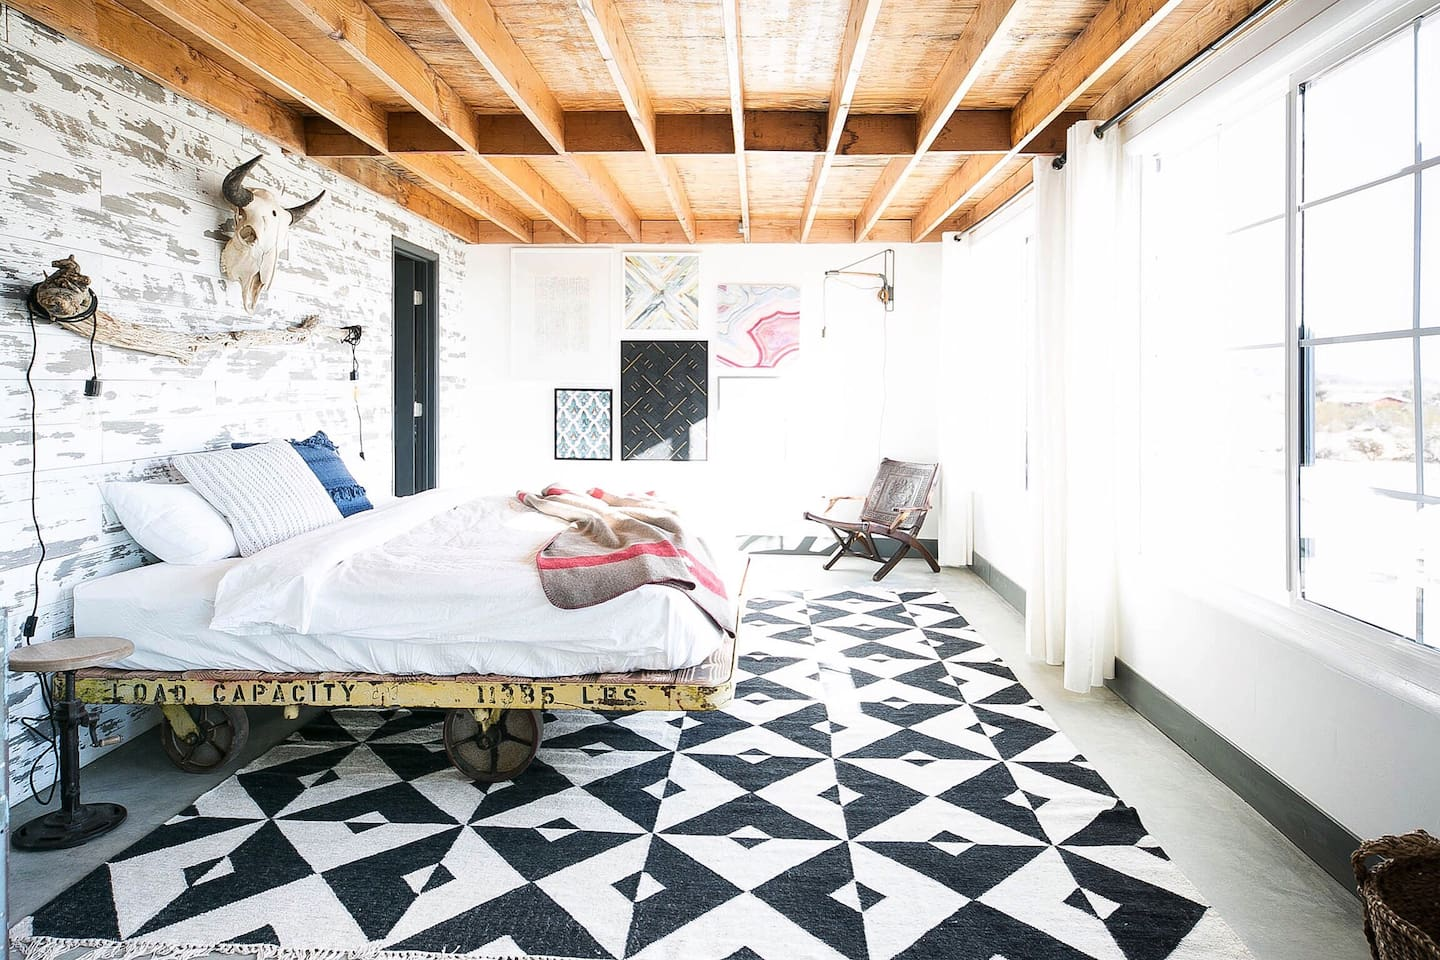 Tow Master Bedroom,This Is The First One,An Industral Cart Converted To A King Size Bed,With a Handmade Black And White Rug.